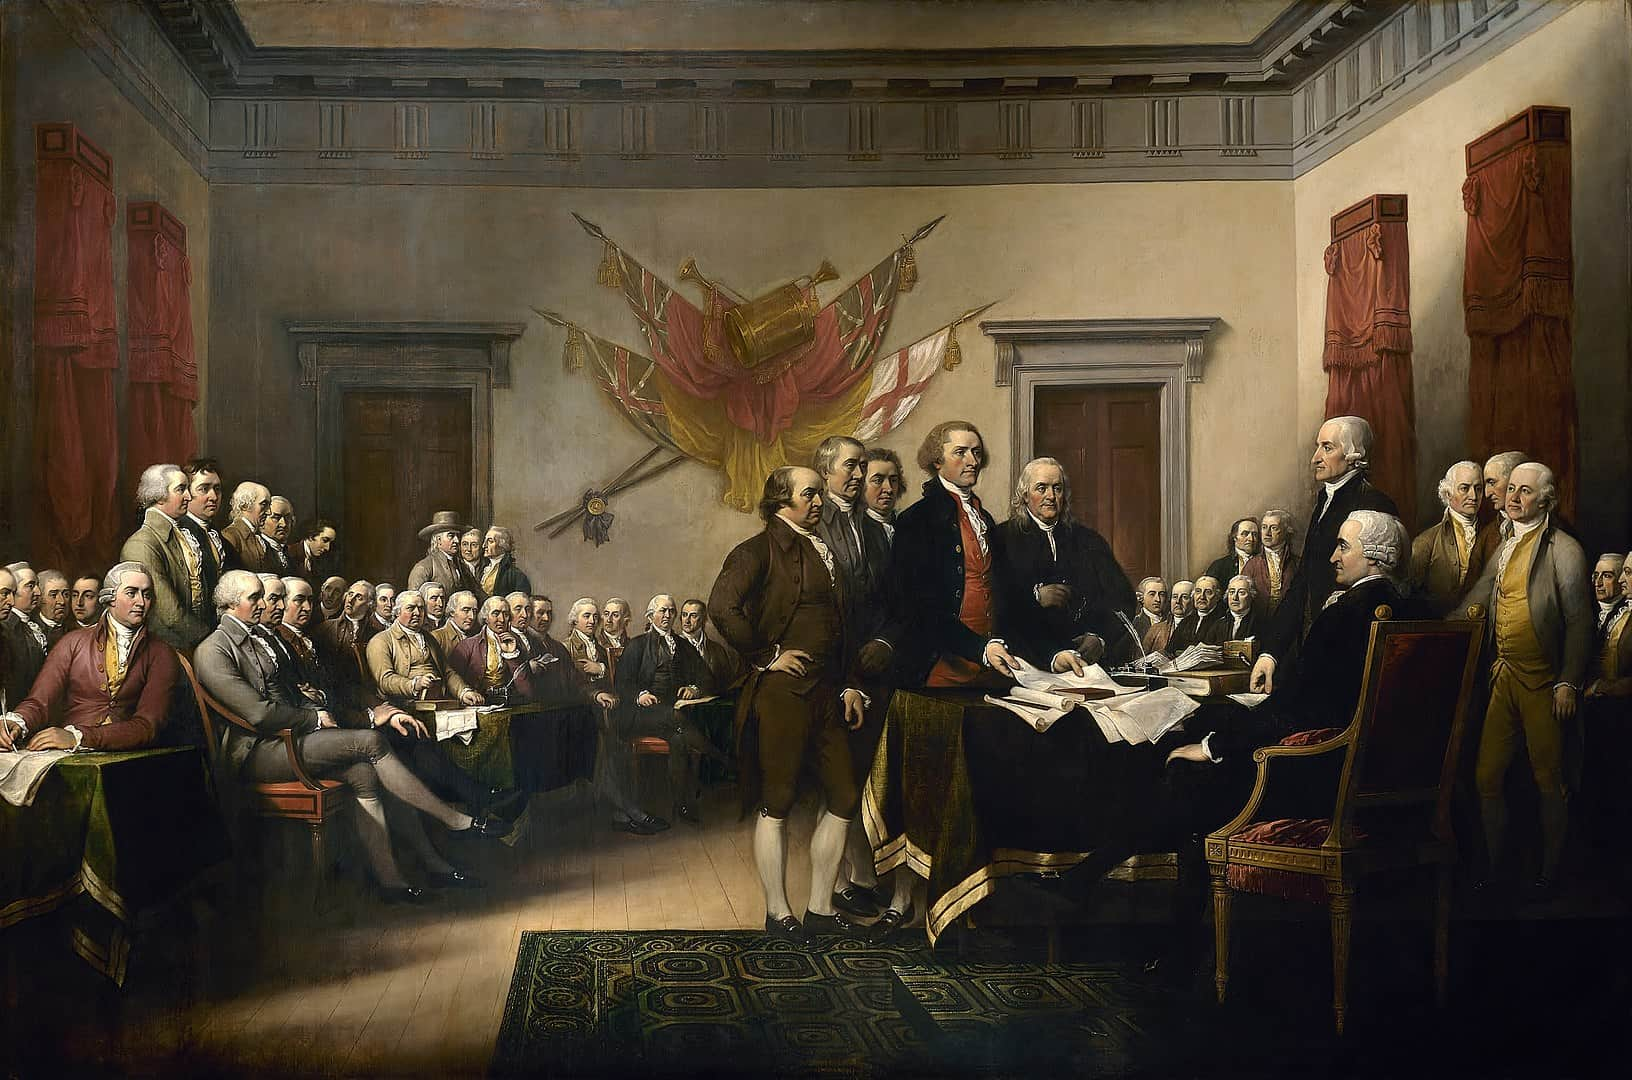 John Trumbull's portrait of the signing of the Declaration of Independence, revolutionary war facts, historical events facts